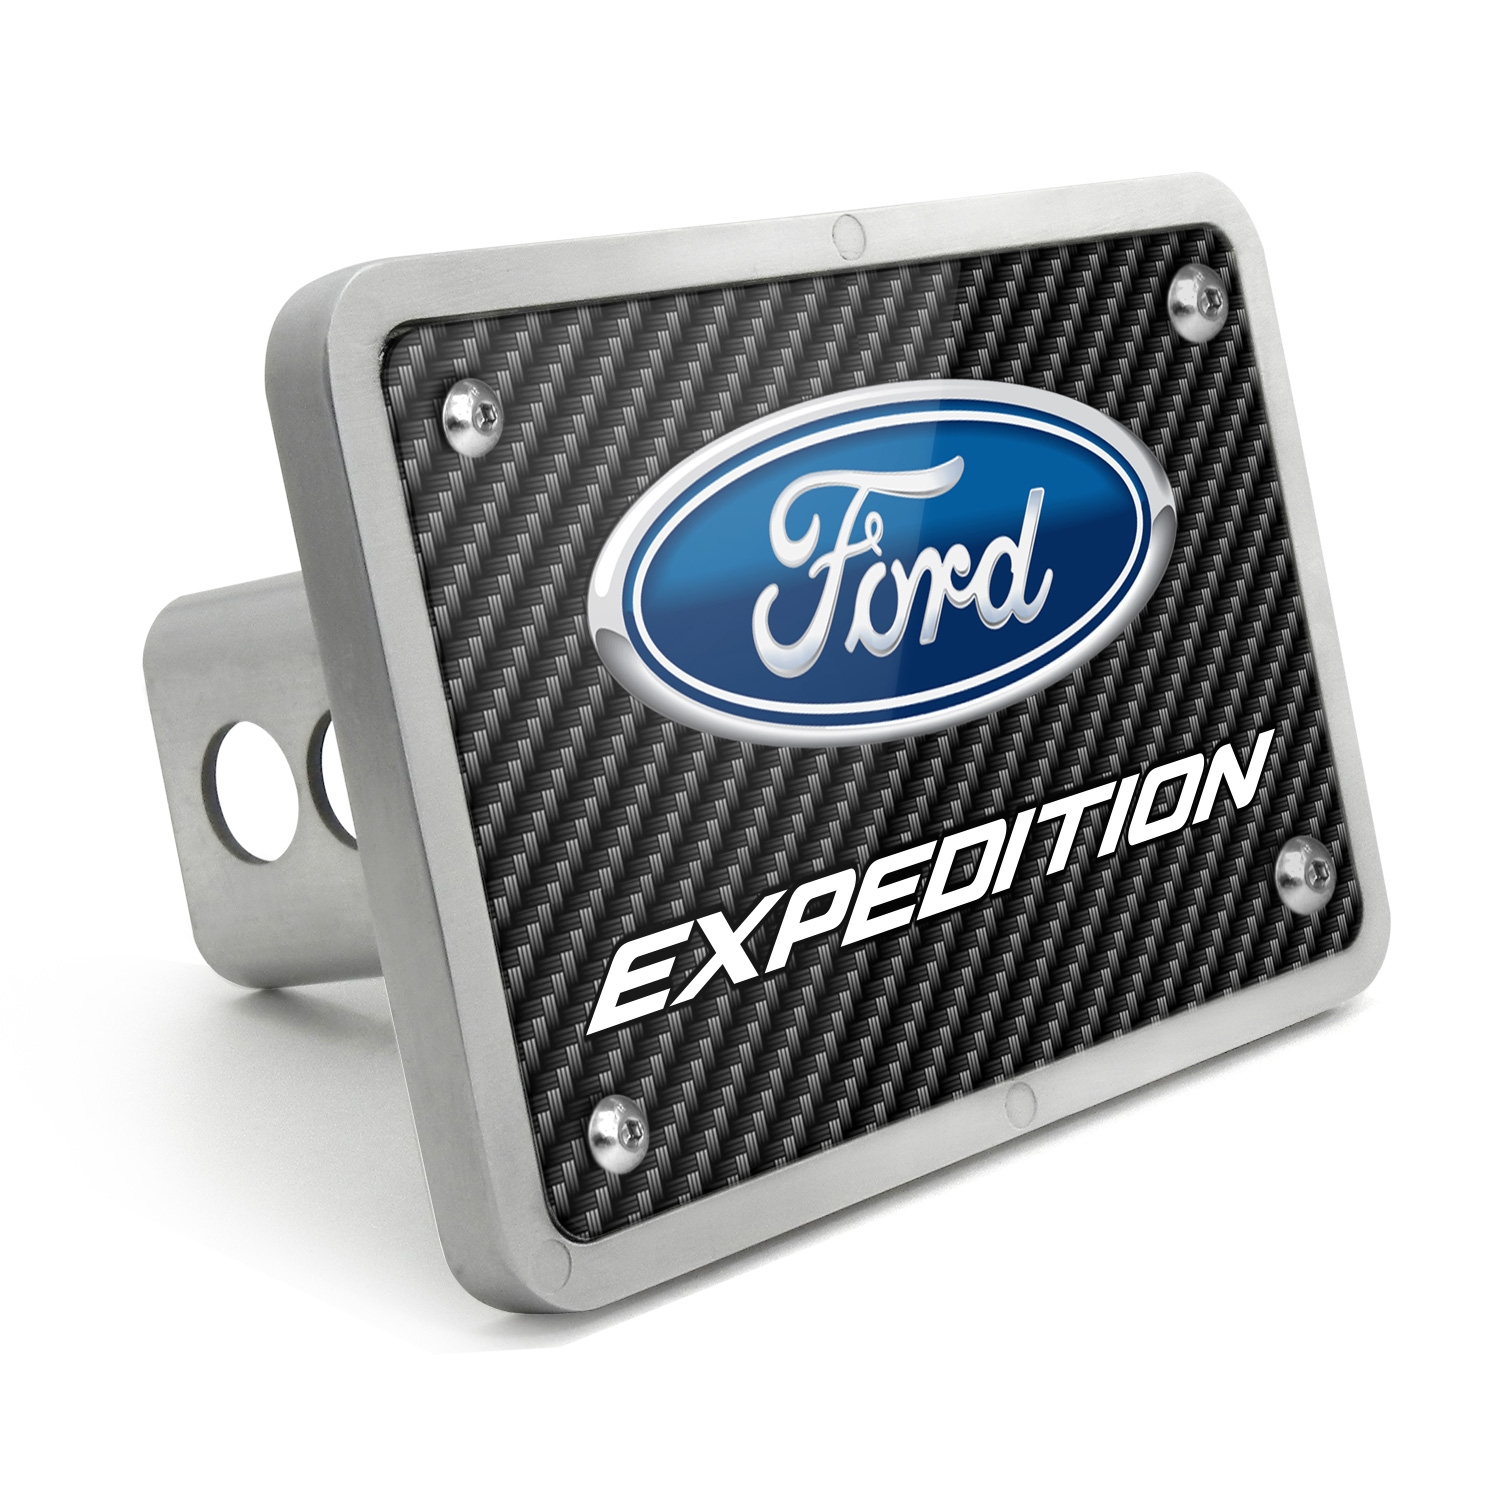 Ford Expedition Black Carbon Fiber Texture Plate Billet Aluminum 2 inch Tow Hitch Cover